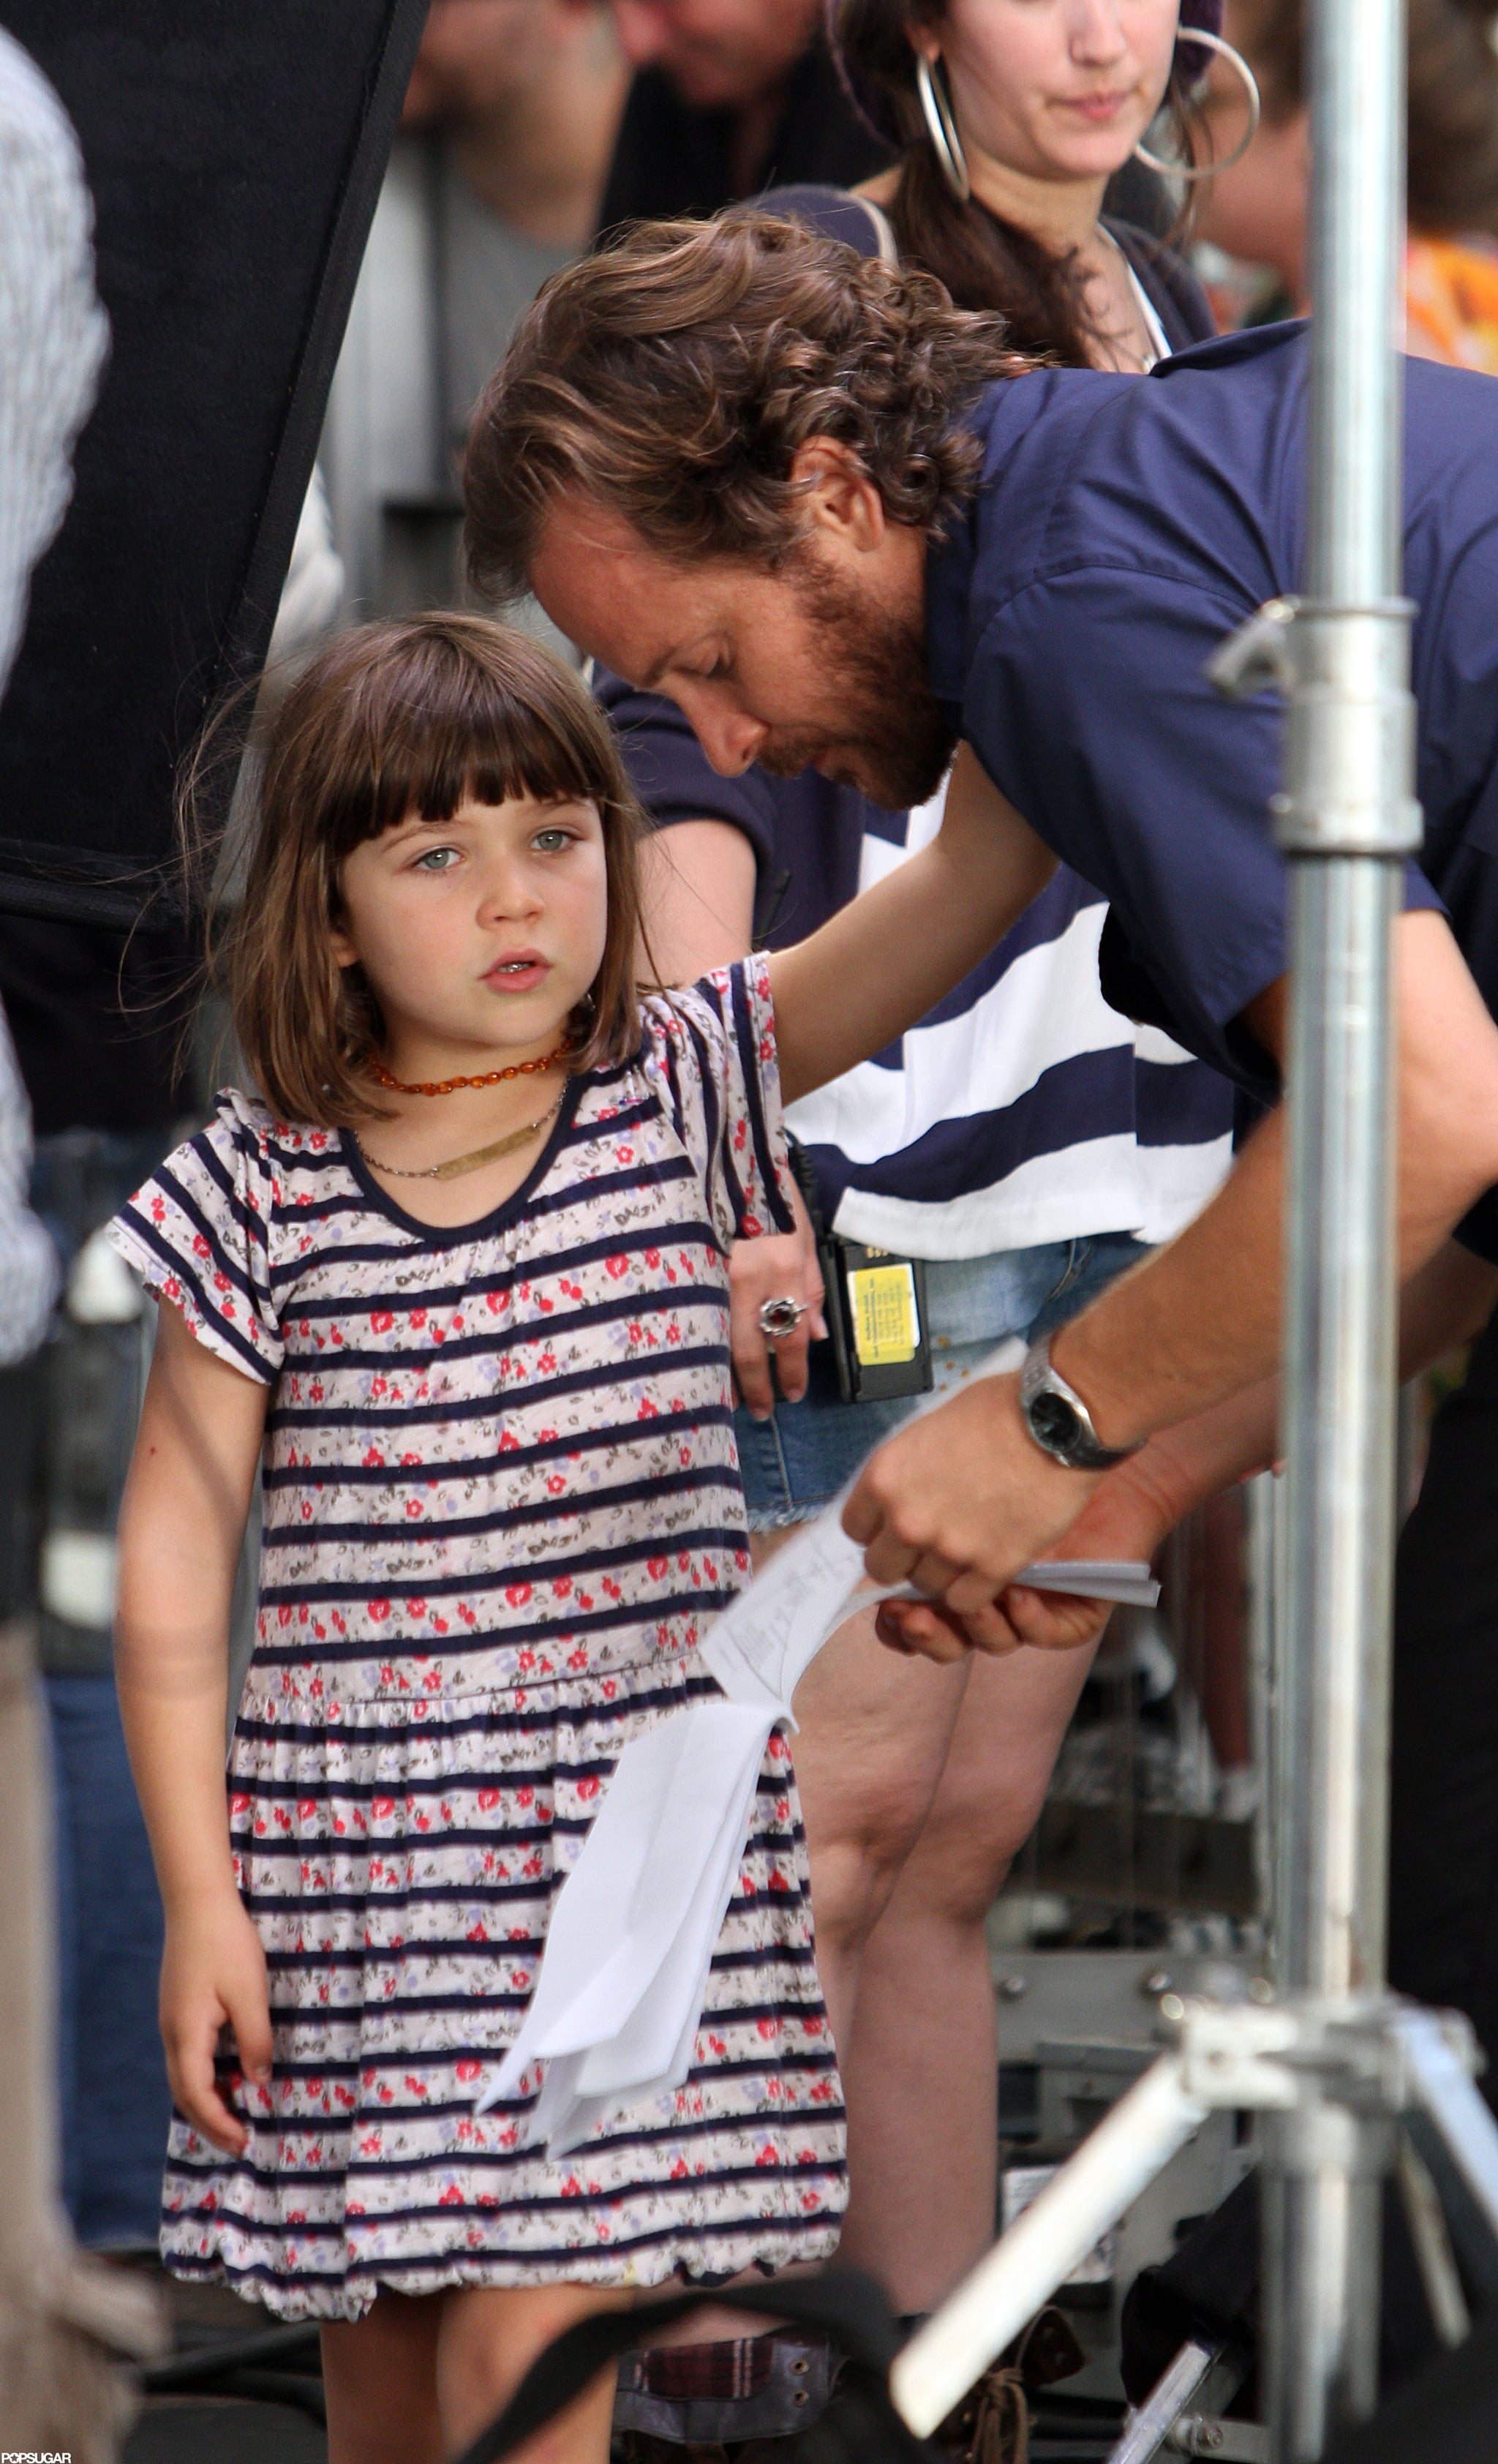 Peter Sarsgaard hung out with daughter Ramona on set in NYC.